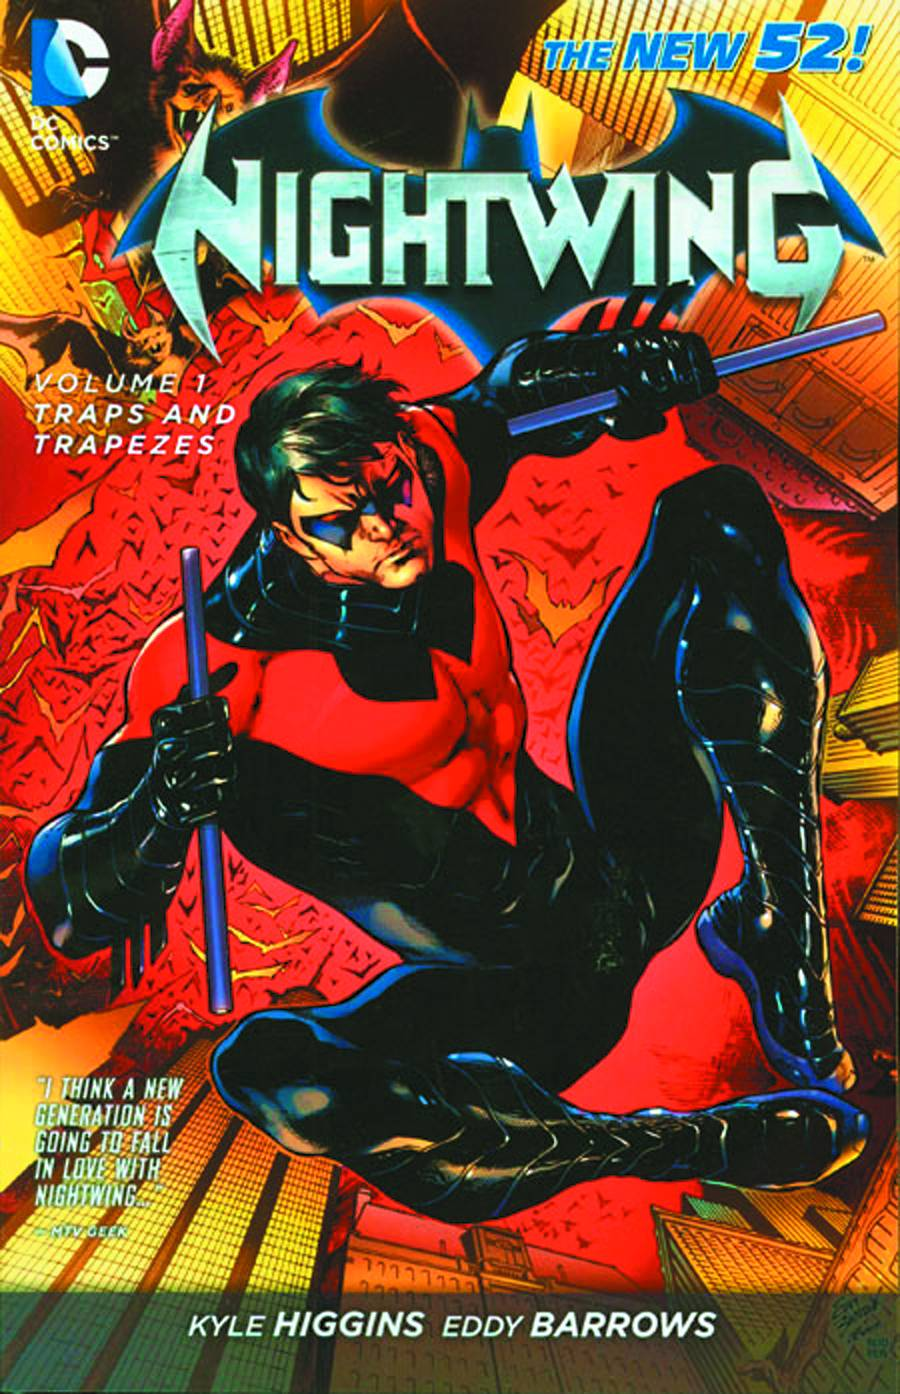 NIGHTWINGVOL 01: TRAPS AND TRAPEZES